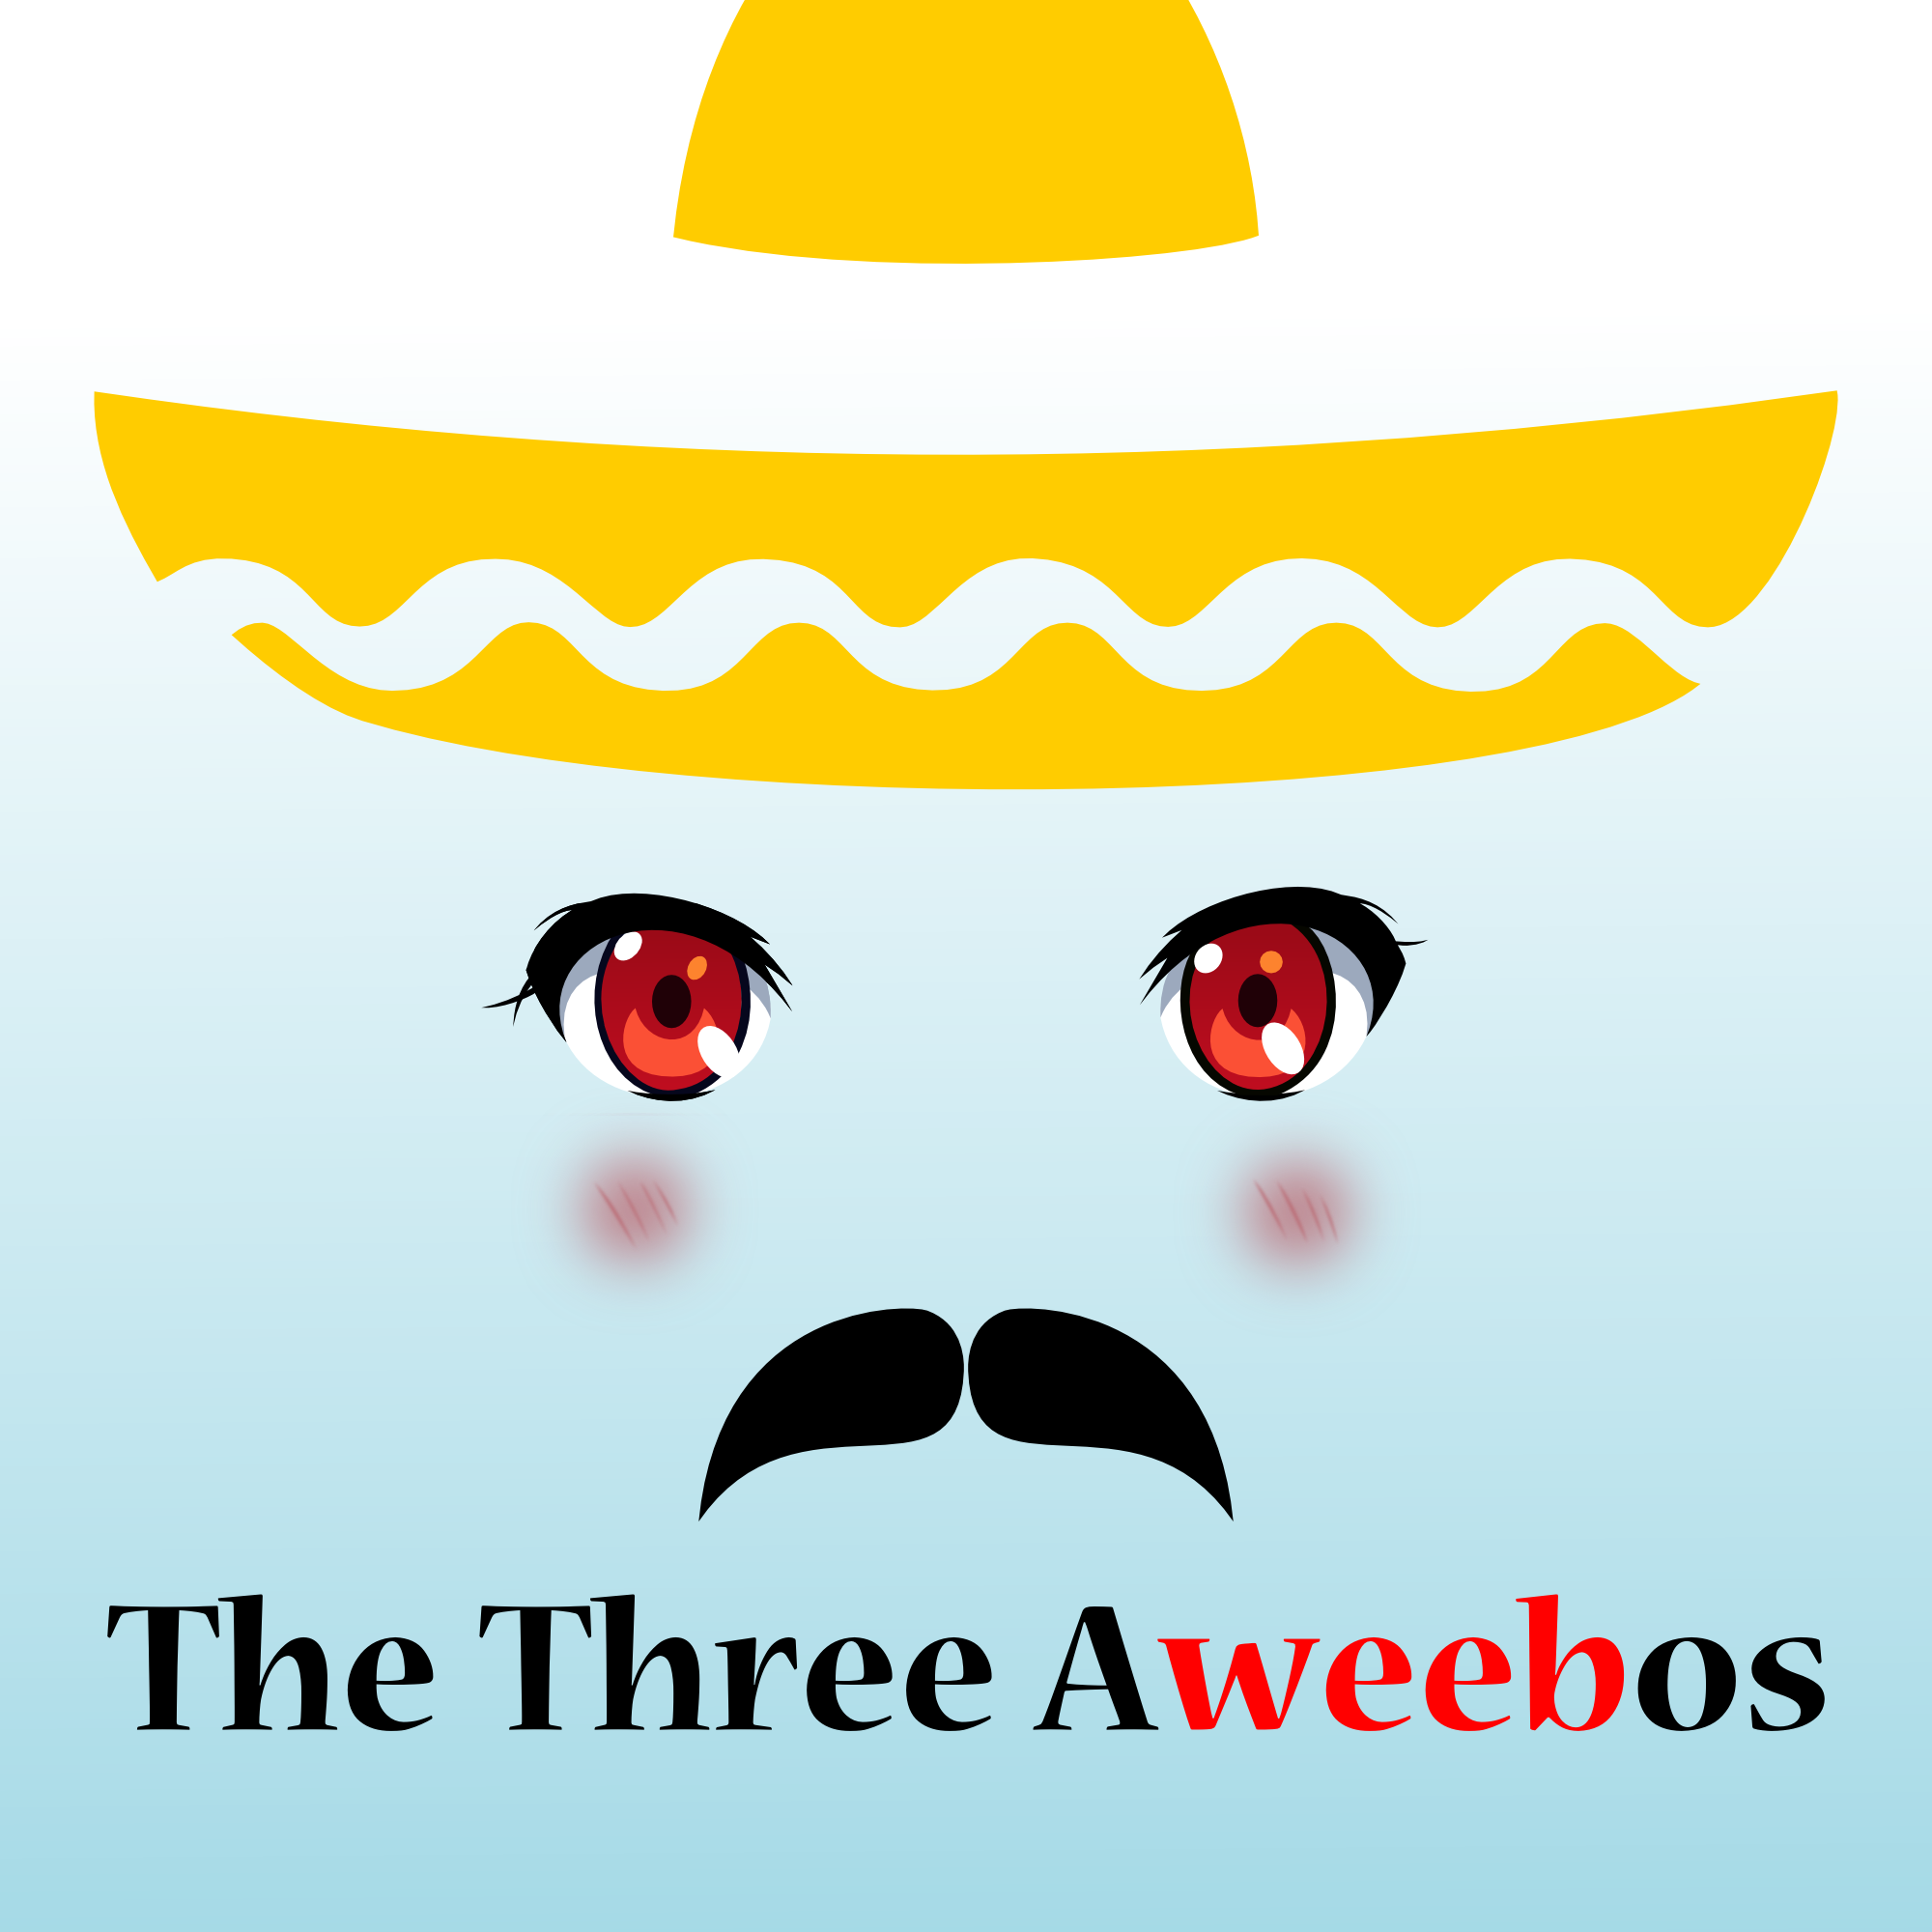 The Three Aweebos